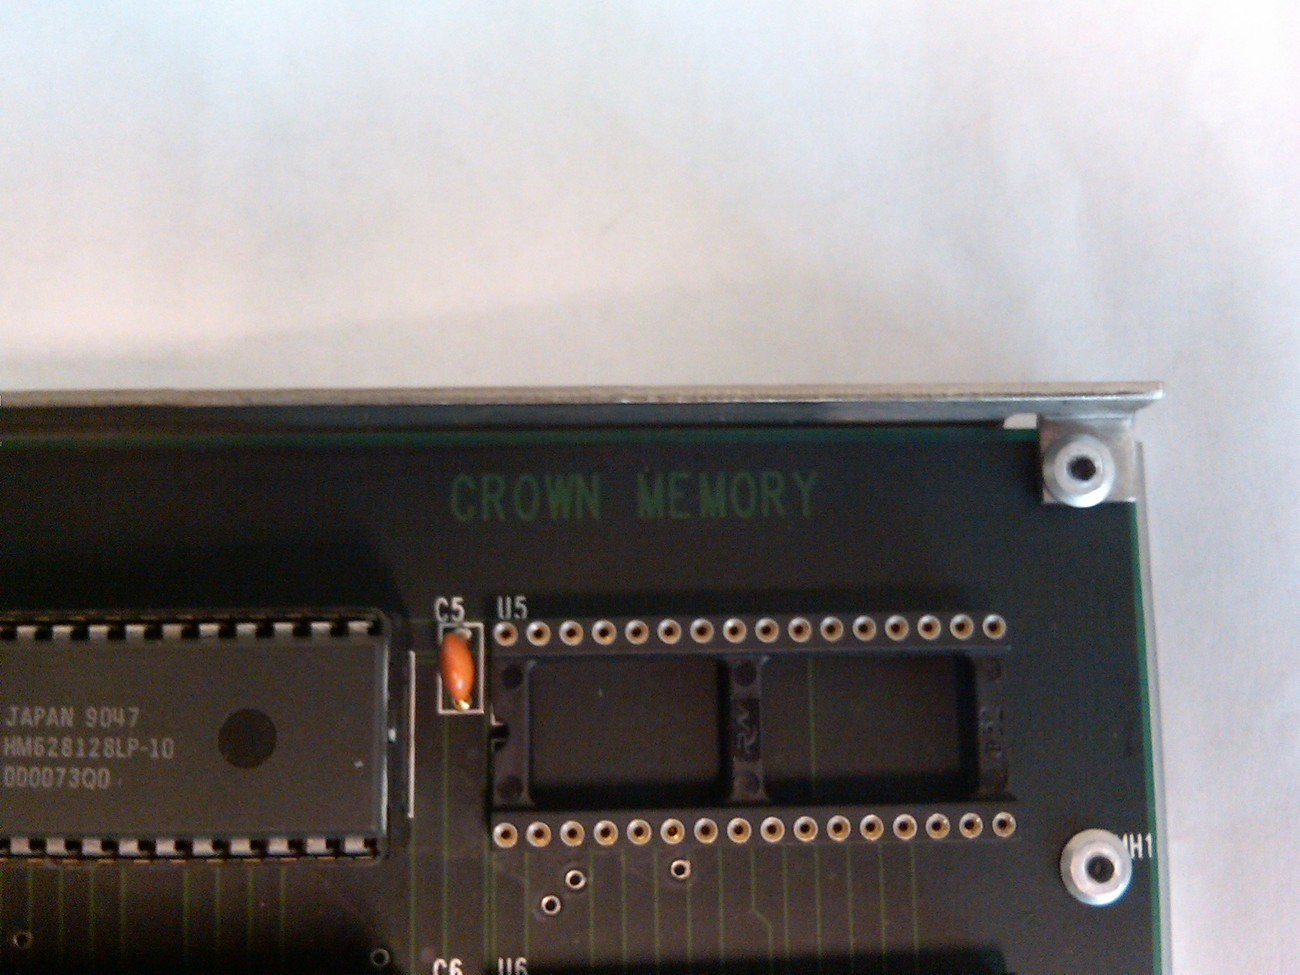 Crown Memory PC Board for Fanuc 6M/T Control